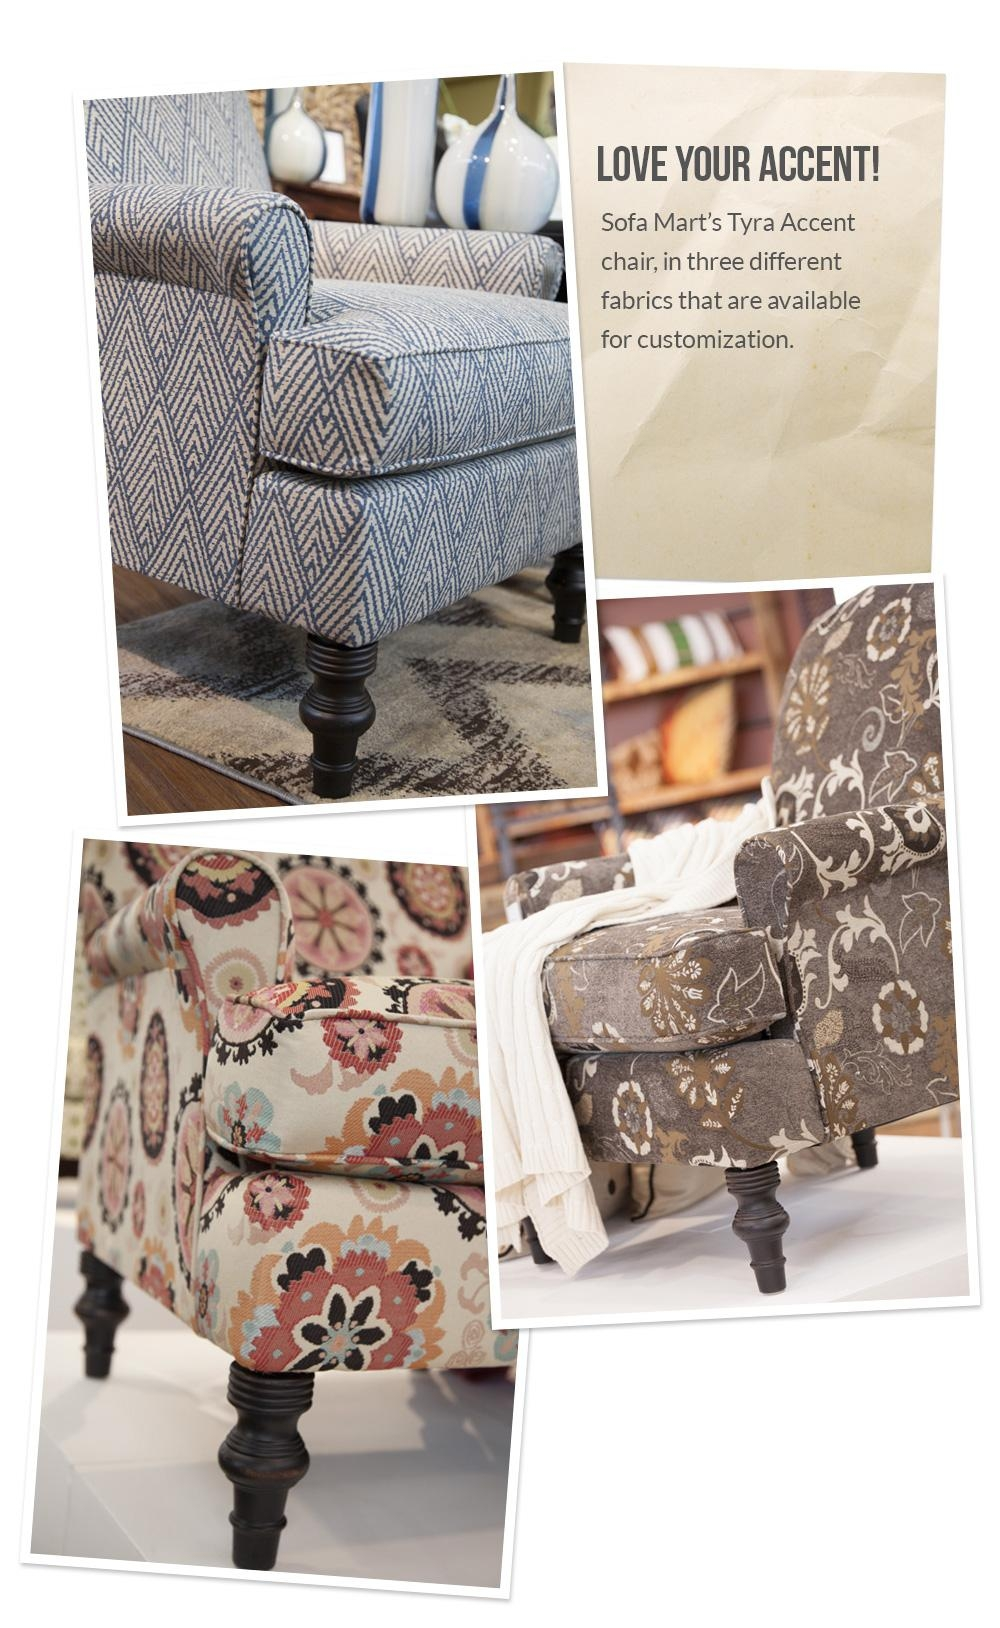 Love Your Accent! Custom Accent Chair Fabrics – Front Door Throughout Sofa Mart Chairs (View 14 of 20)